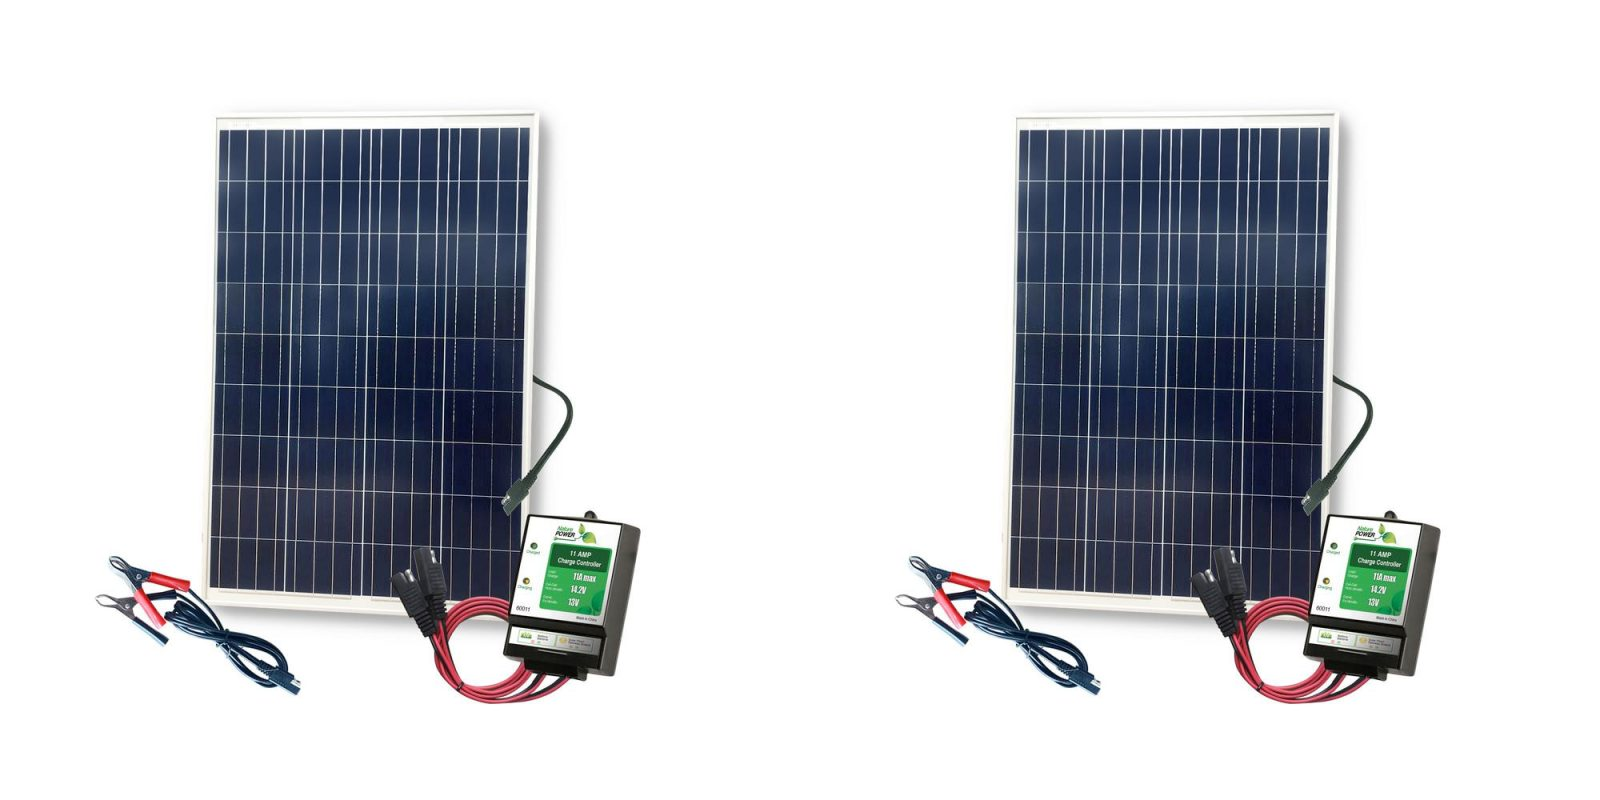 Charge up on the lake with this 100W Complete Solar Kit for $89 (Reg. $125+)